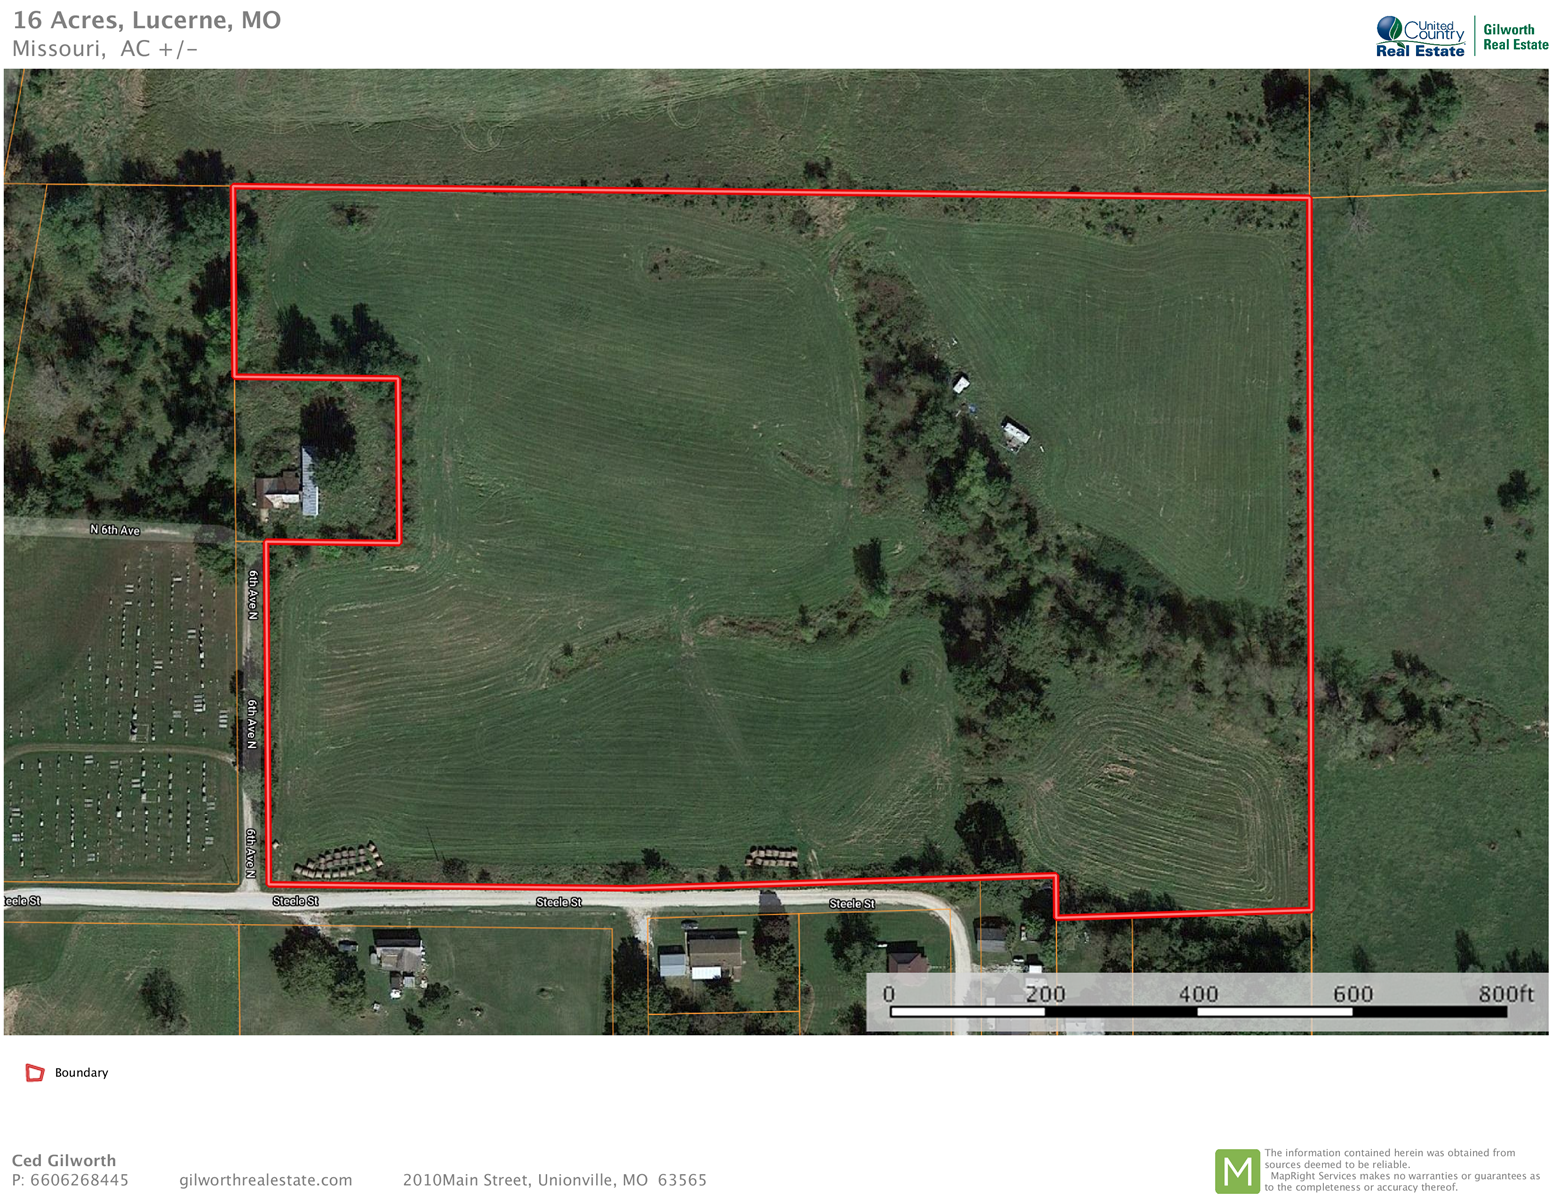 16.2 Acres of Open Hay Ground Located in Lucerne,  MO.